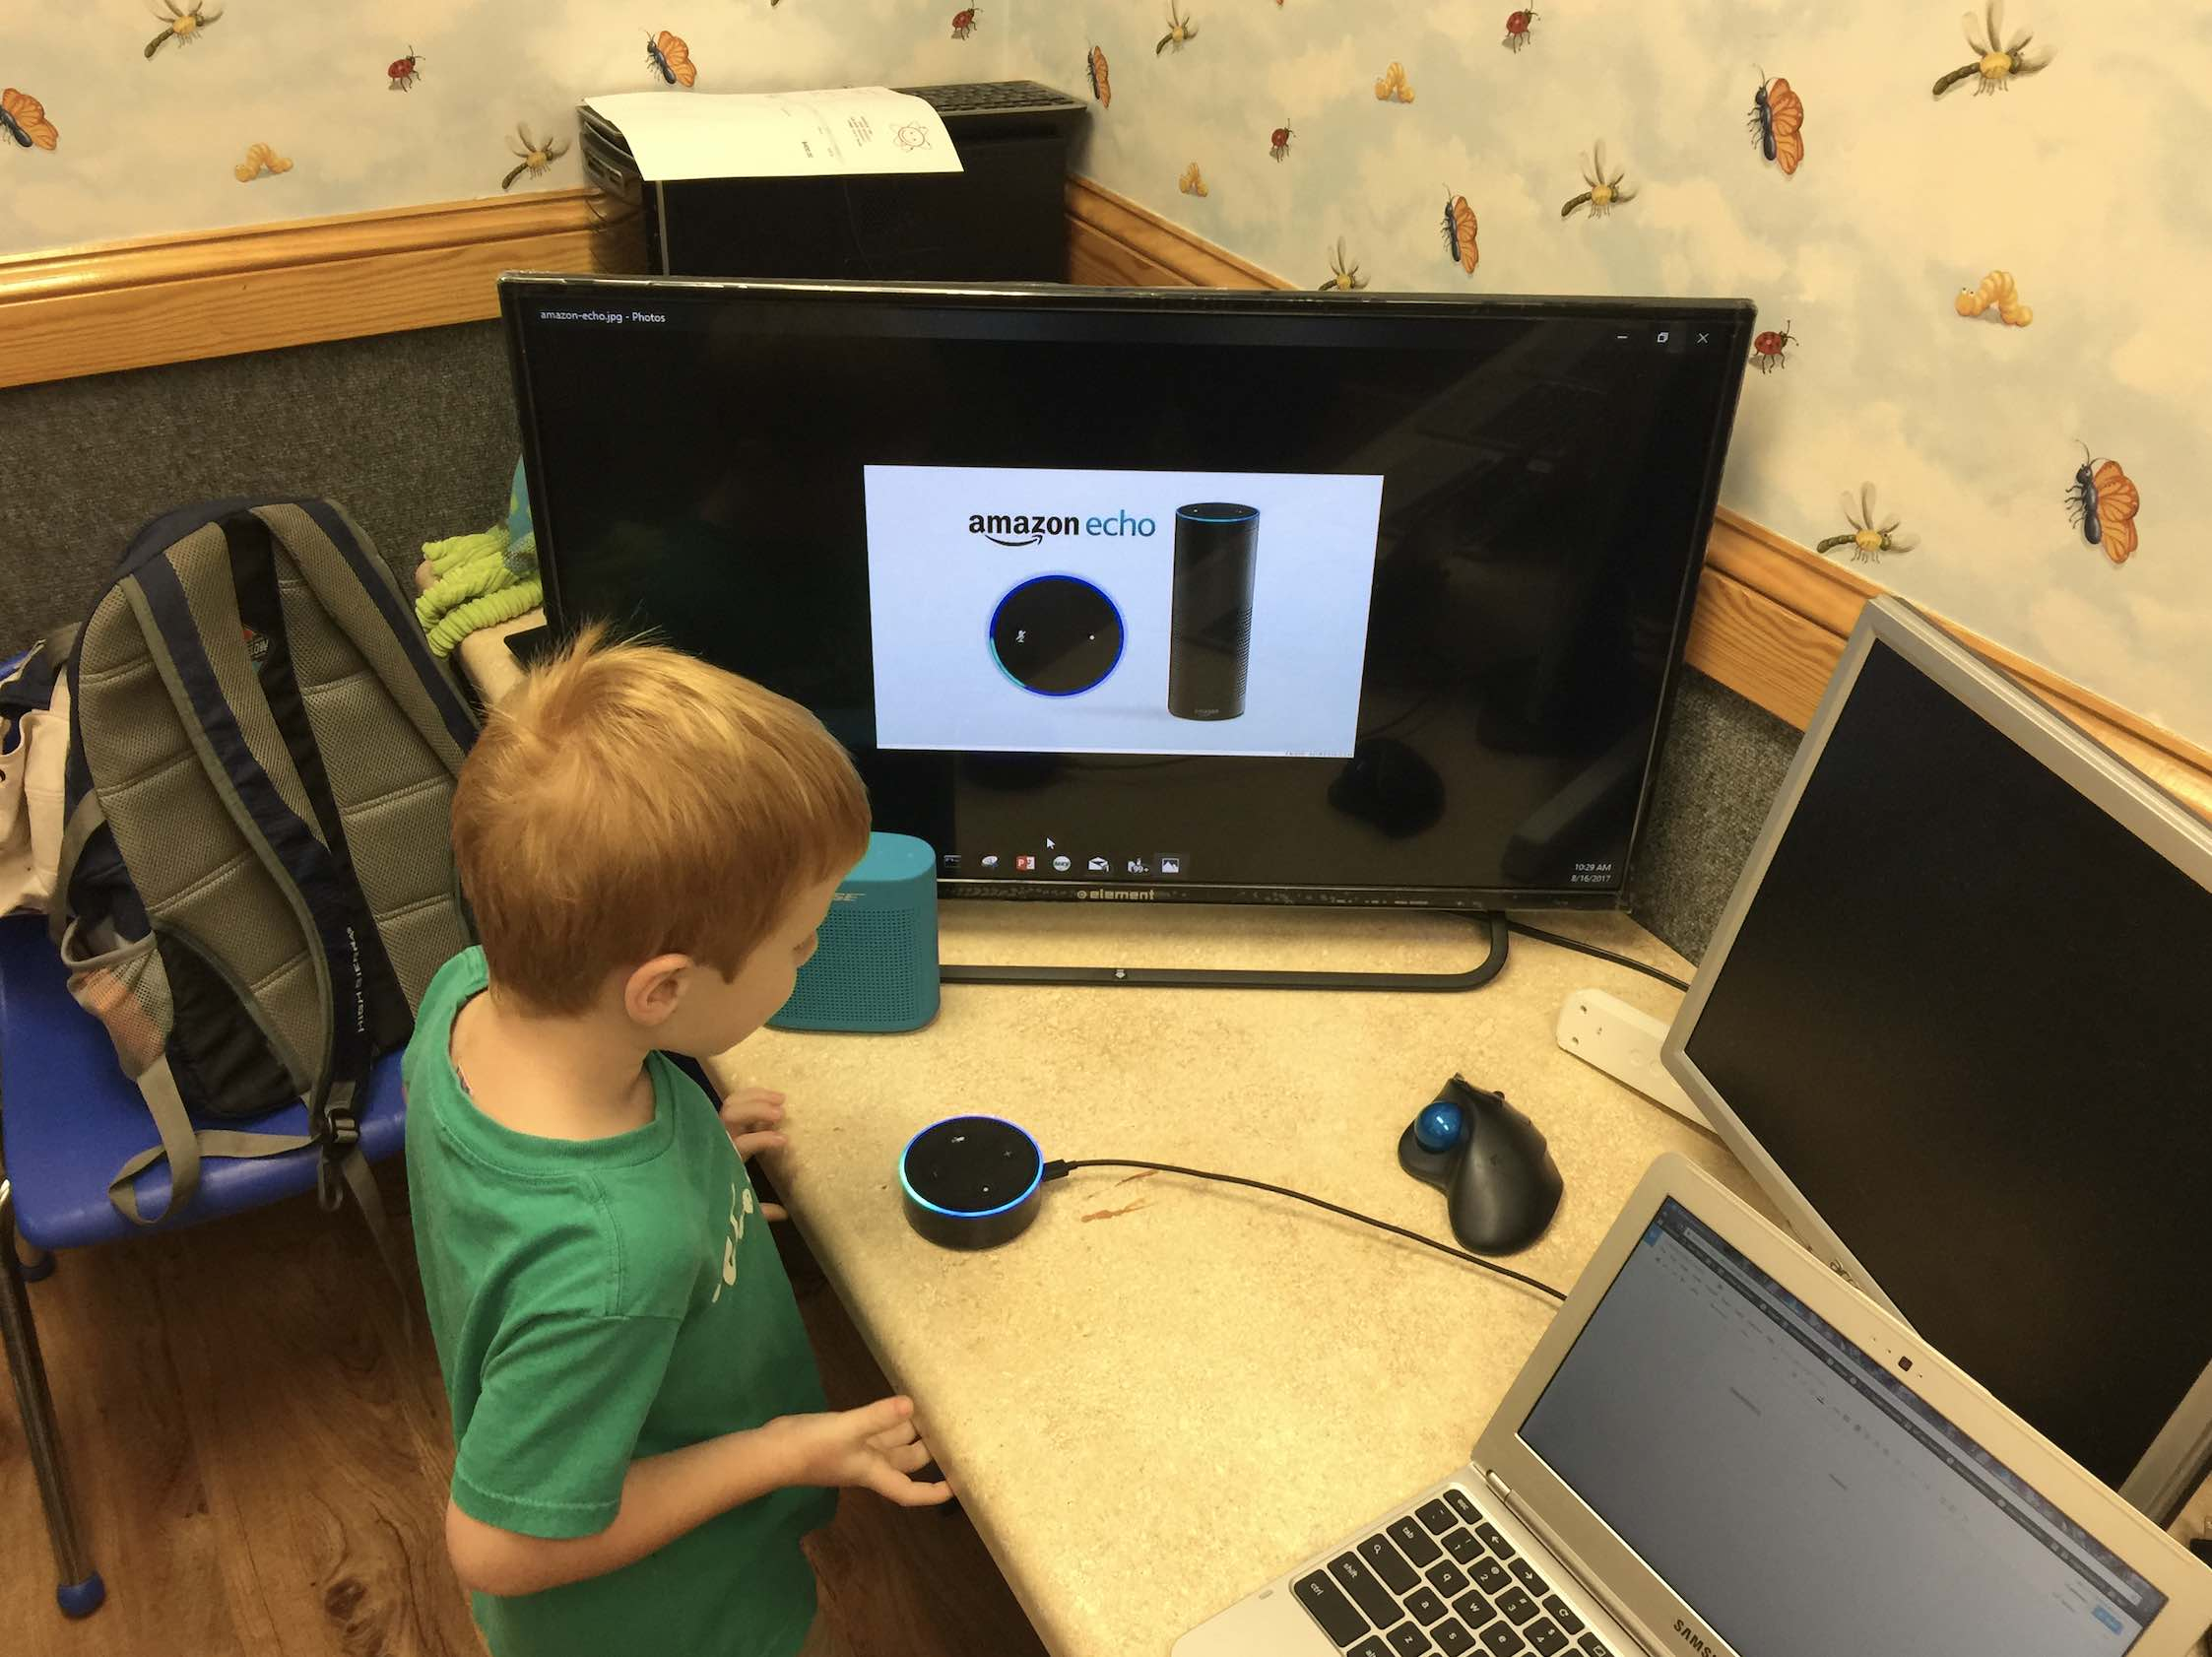 Kids Learning Tech Launches Amazon Echo Course